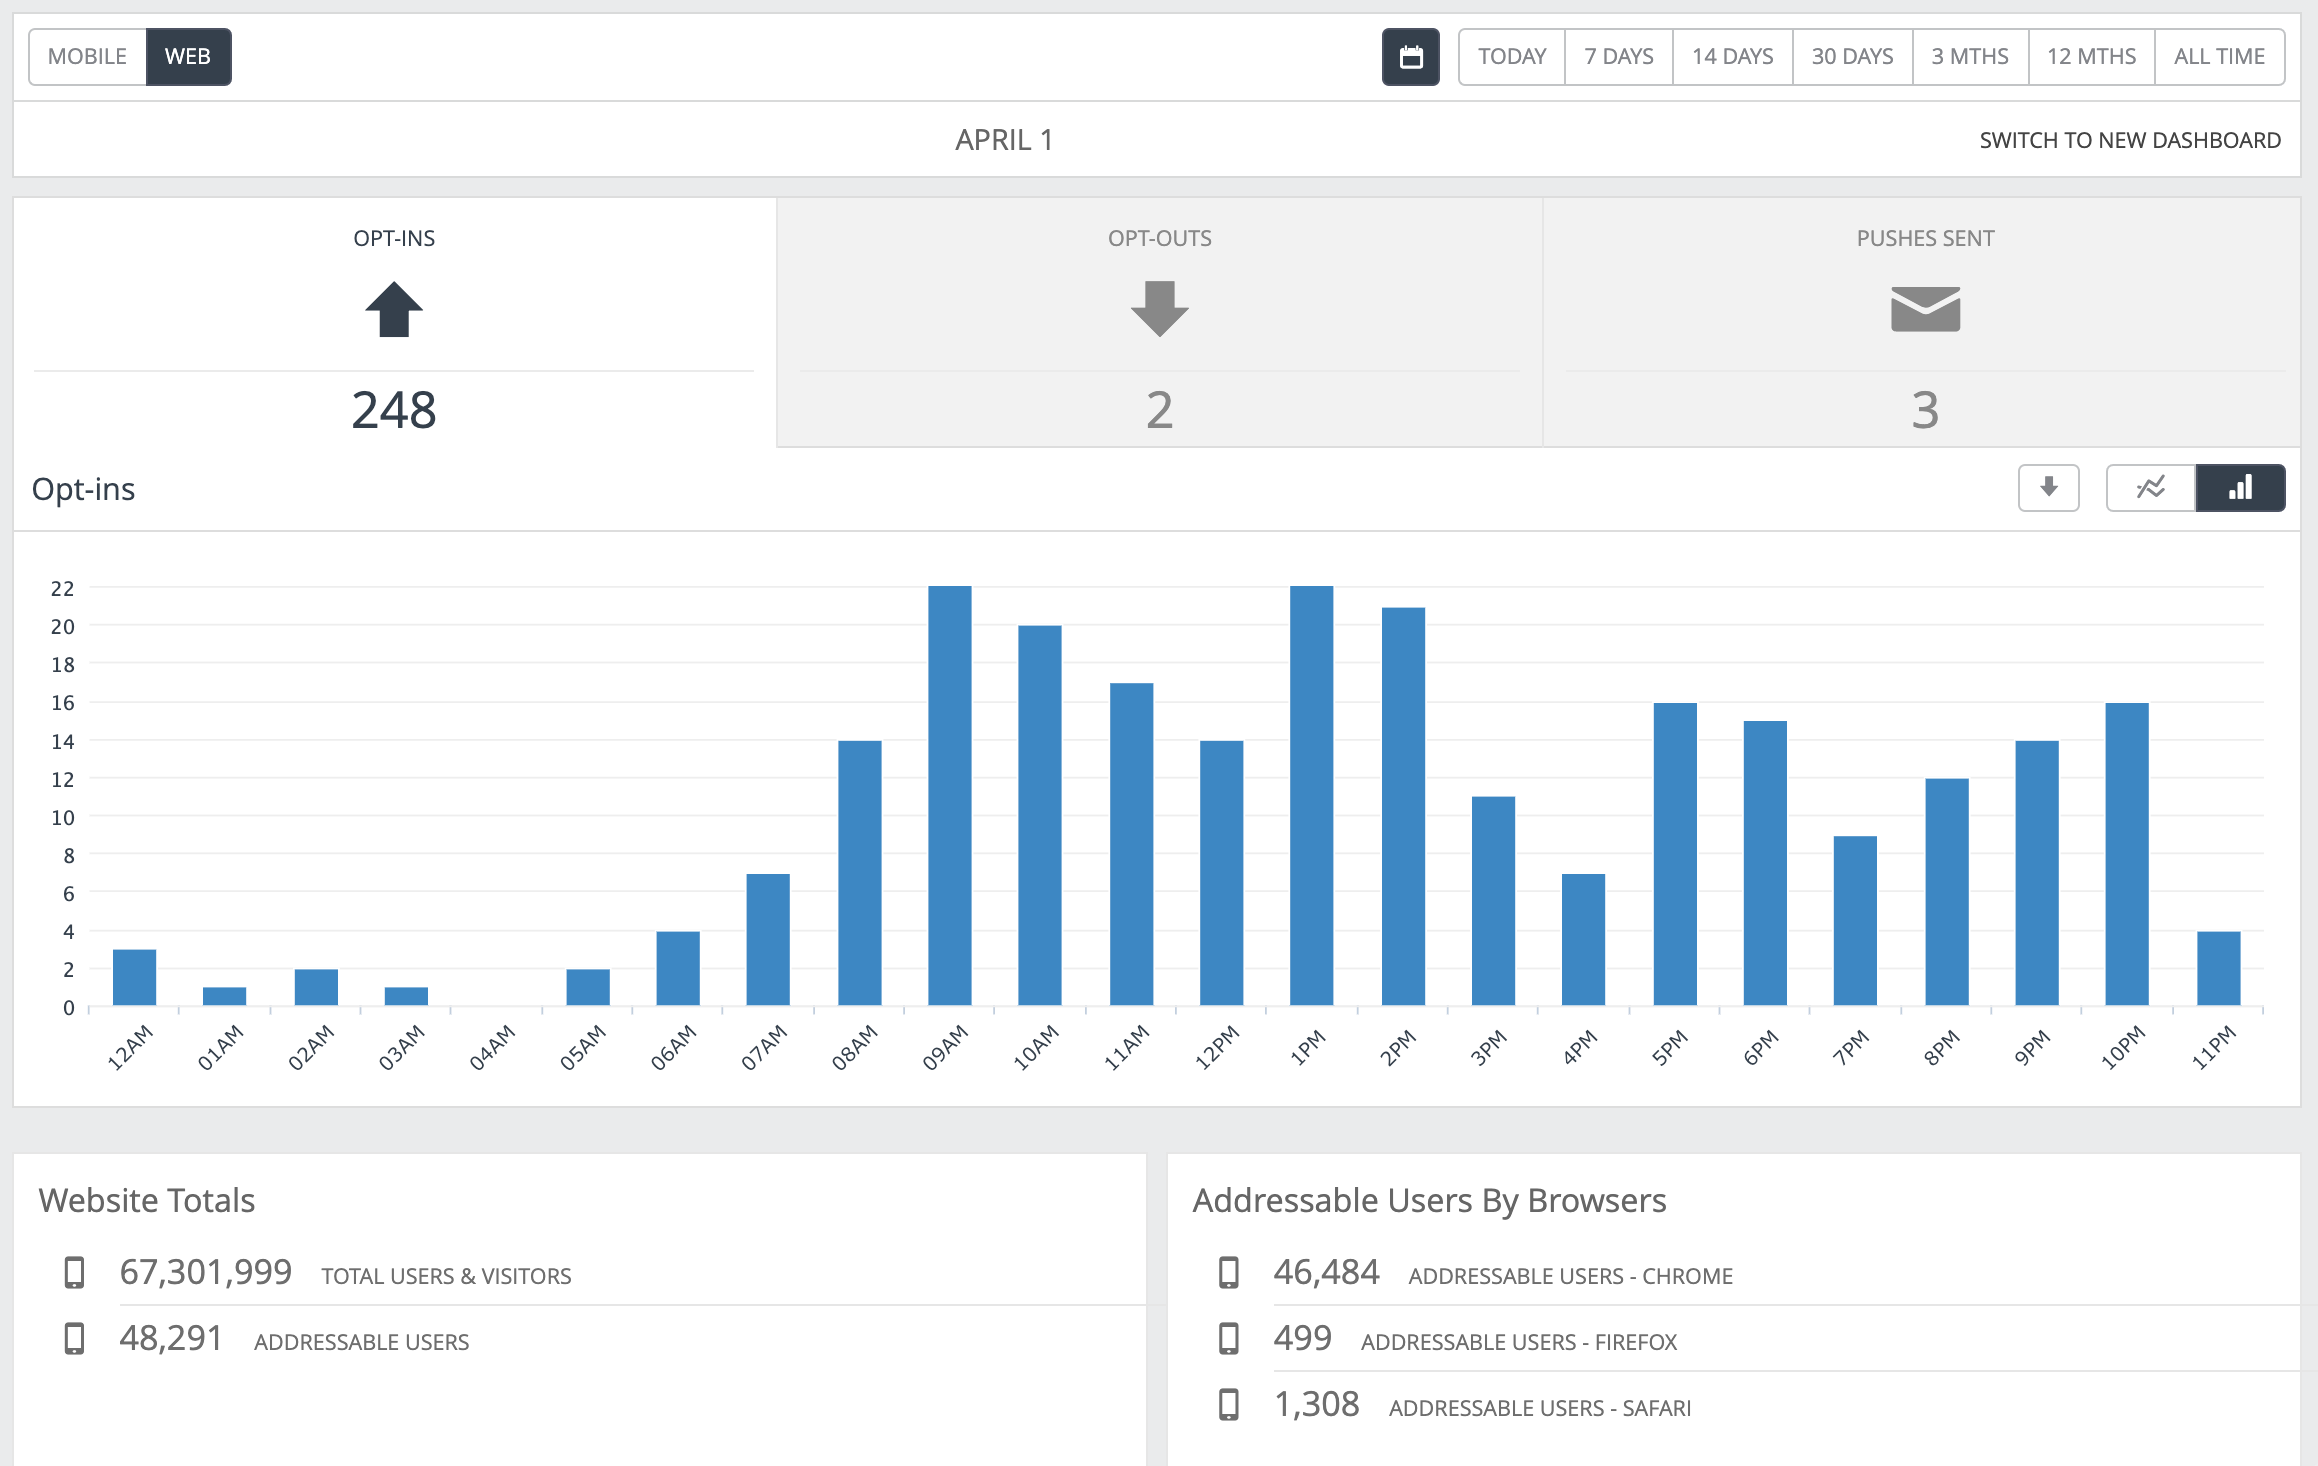 Example of the stats available for web. Showing timeline of opt-ins in a single day (bar chart).